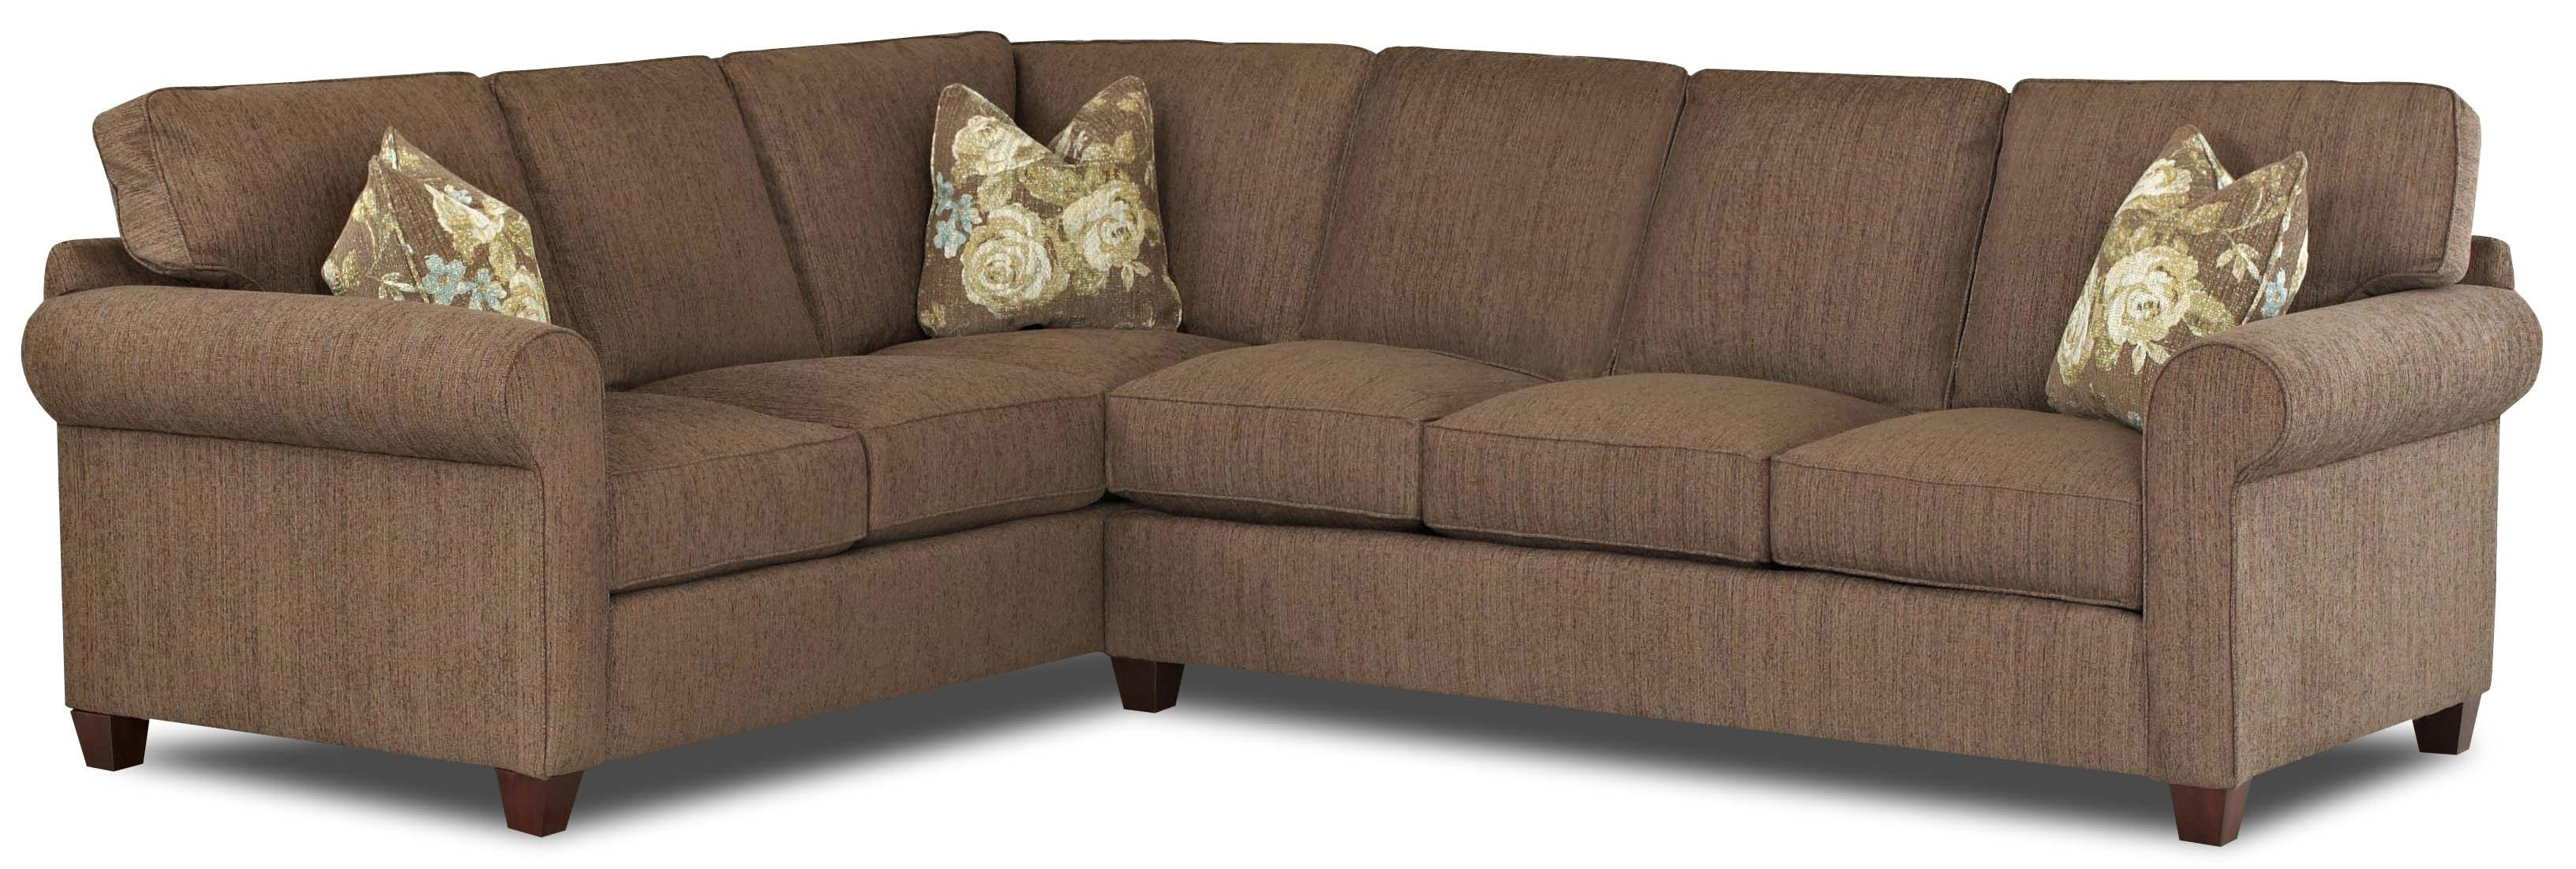 Transitional 2 Piece Sectional Sofa with Welt : two piece sectional couch - Sectionals, Sofas & Couches